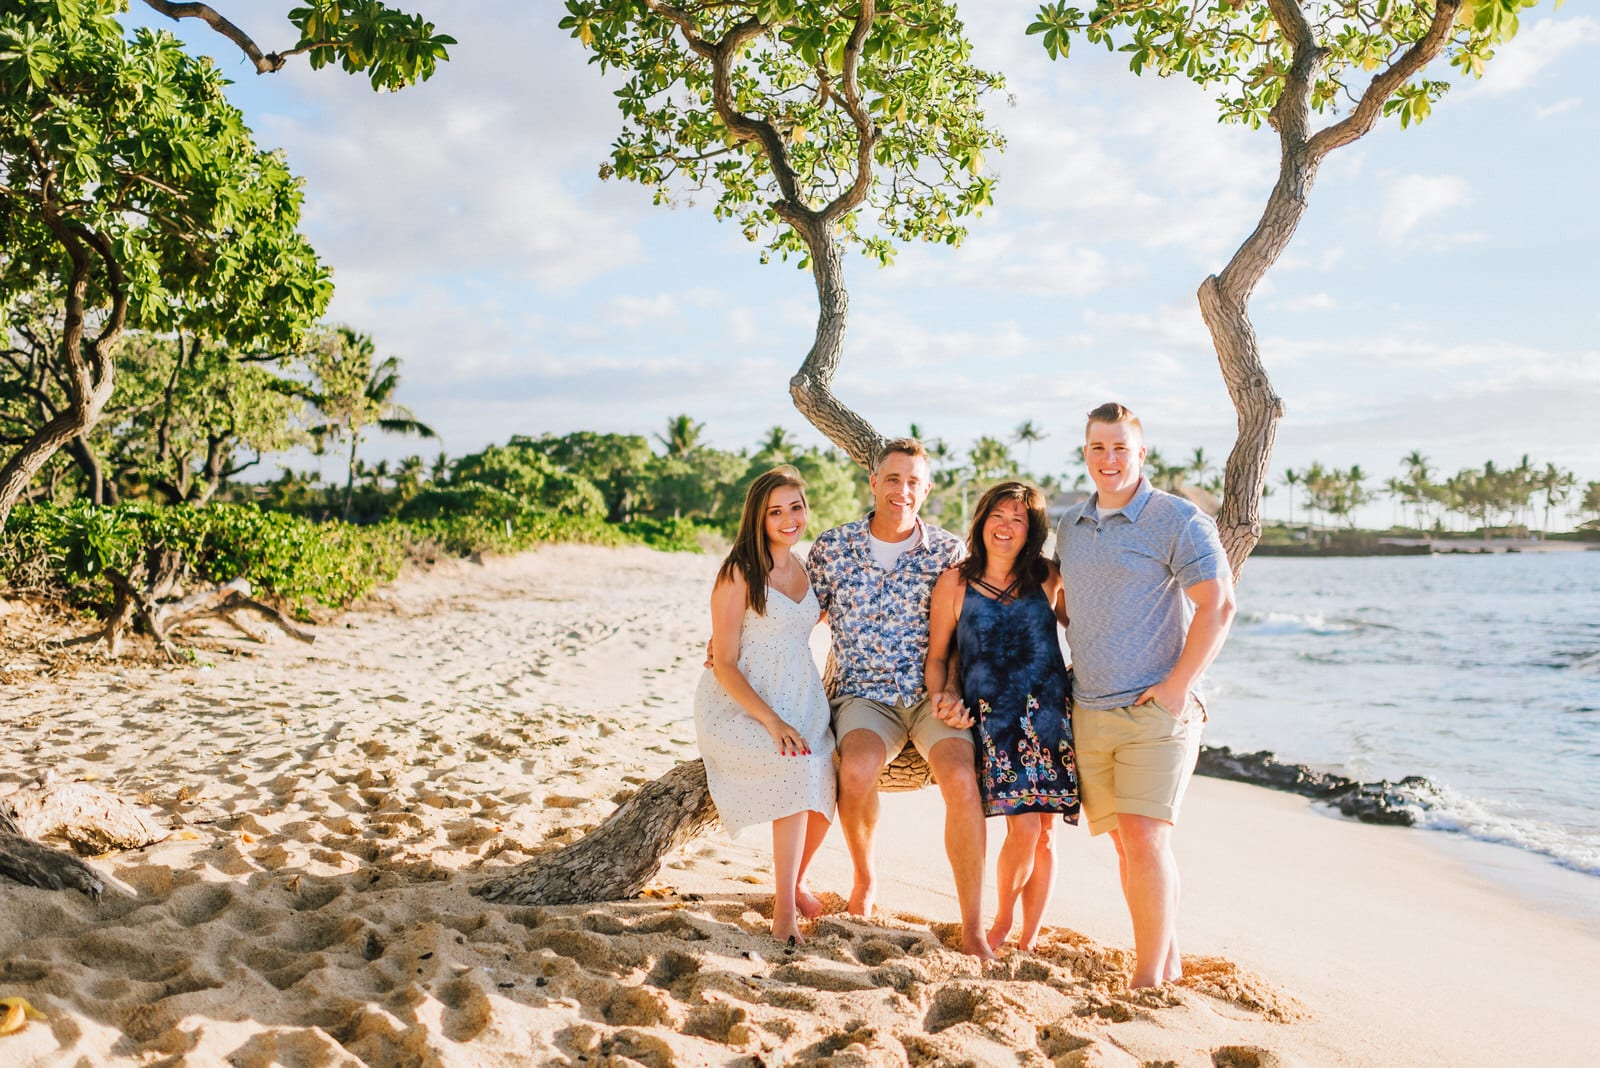 Four-Seasons-Family-Photographer-Kona-Hawaii-9.jpg